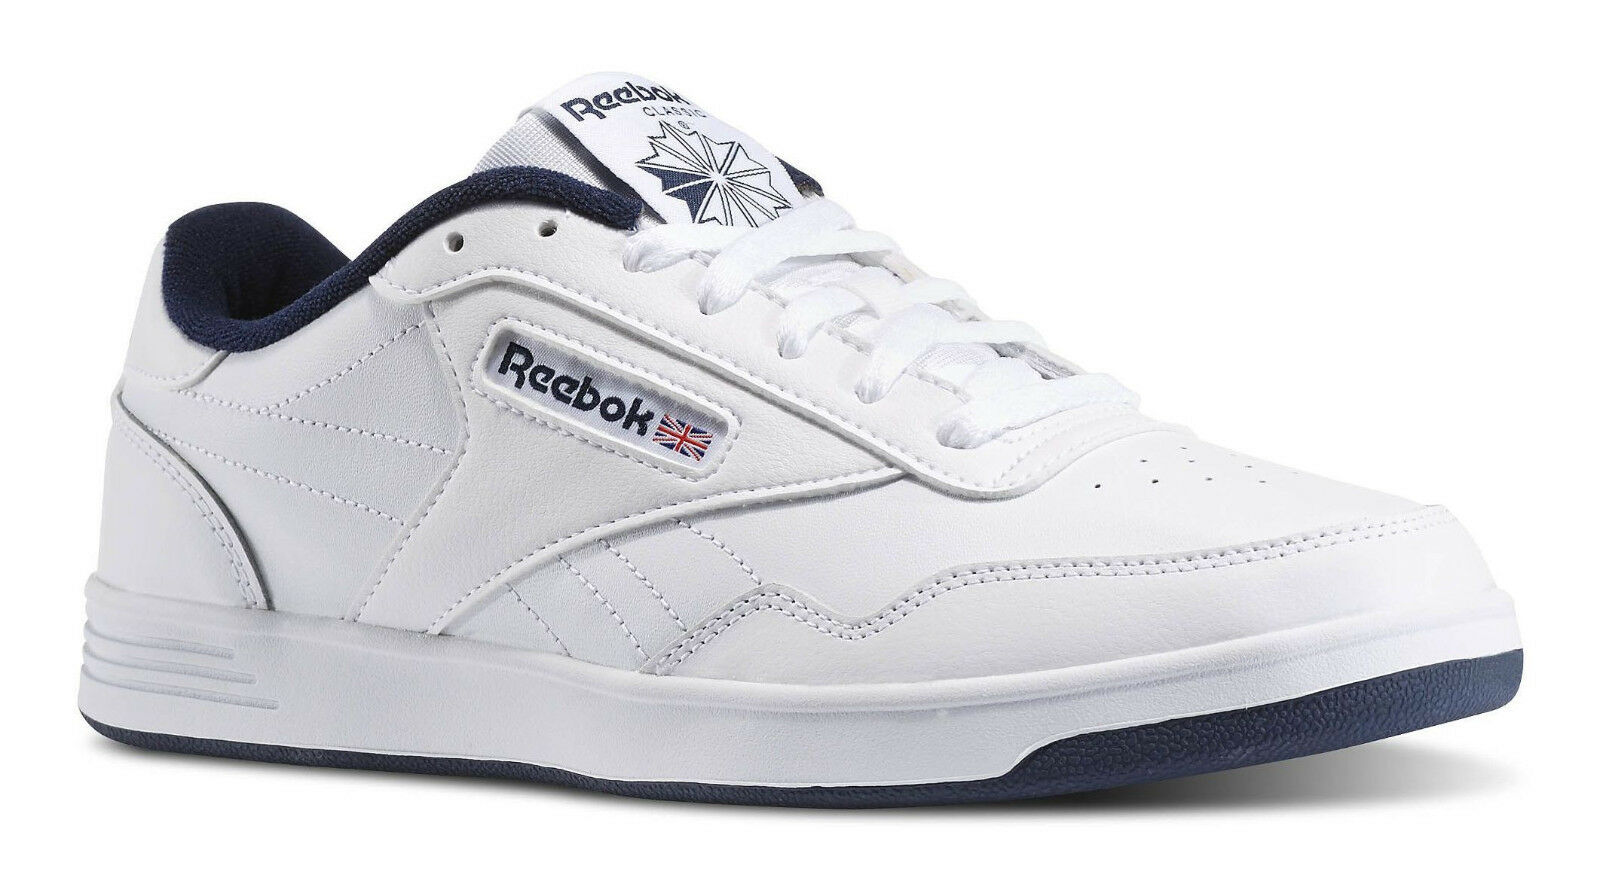 Reebok Classic Club Memt Lifestyle Weiß Navy Schuhes  Uomo Sneakers Tennis Schuhes Navy 95b58c